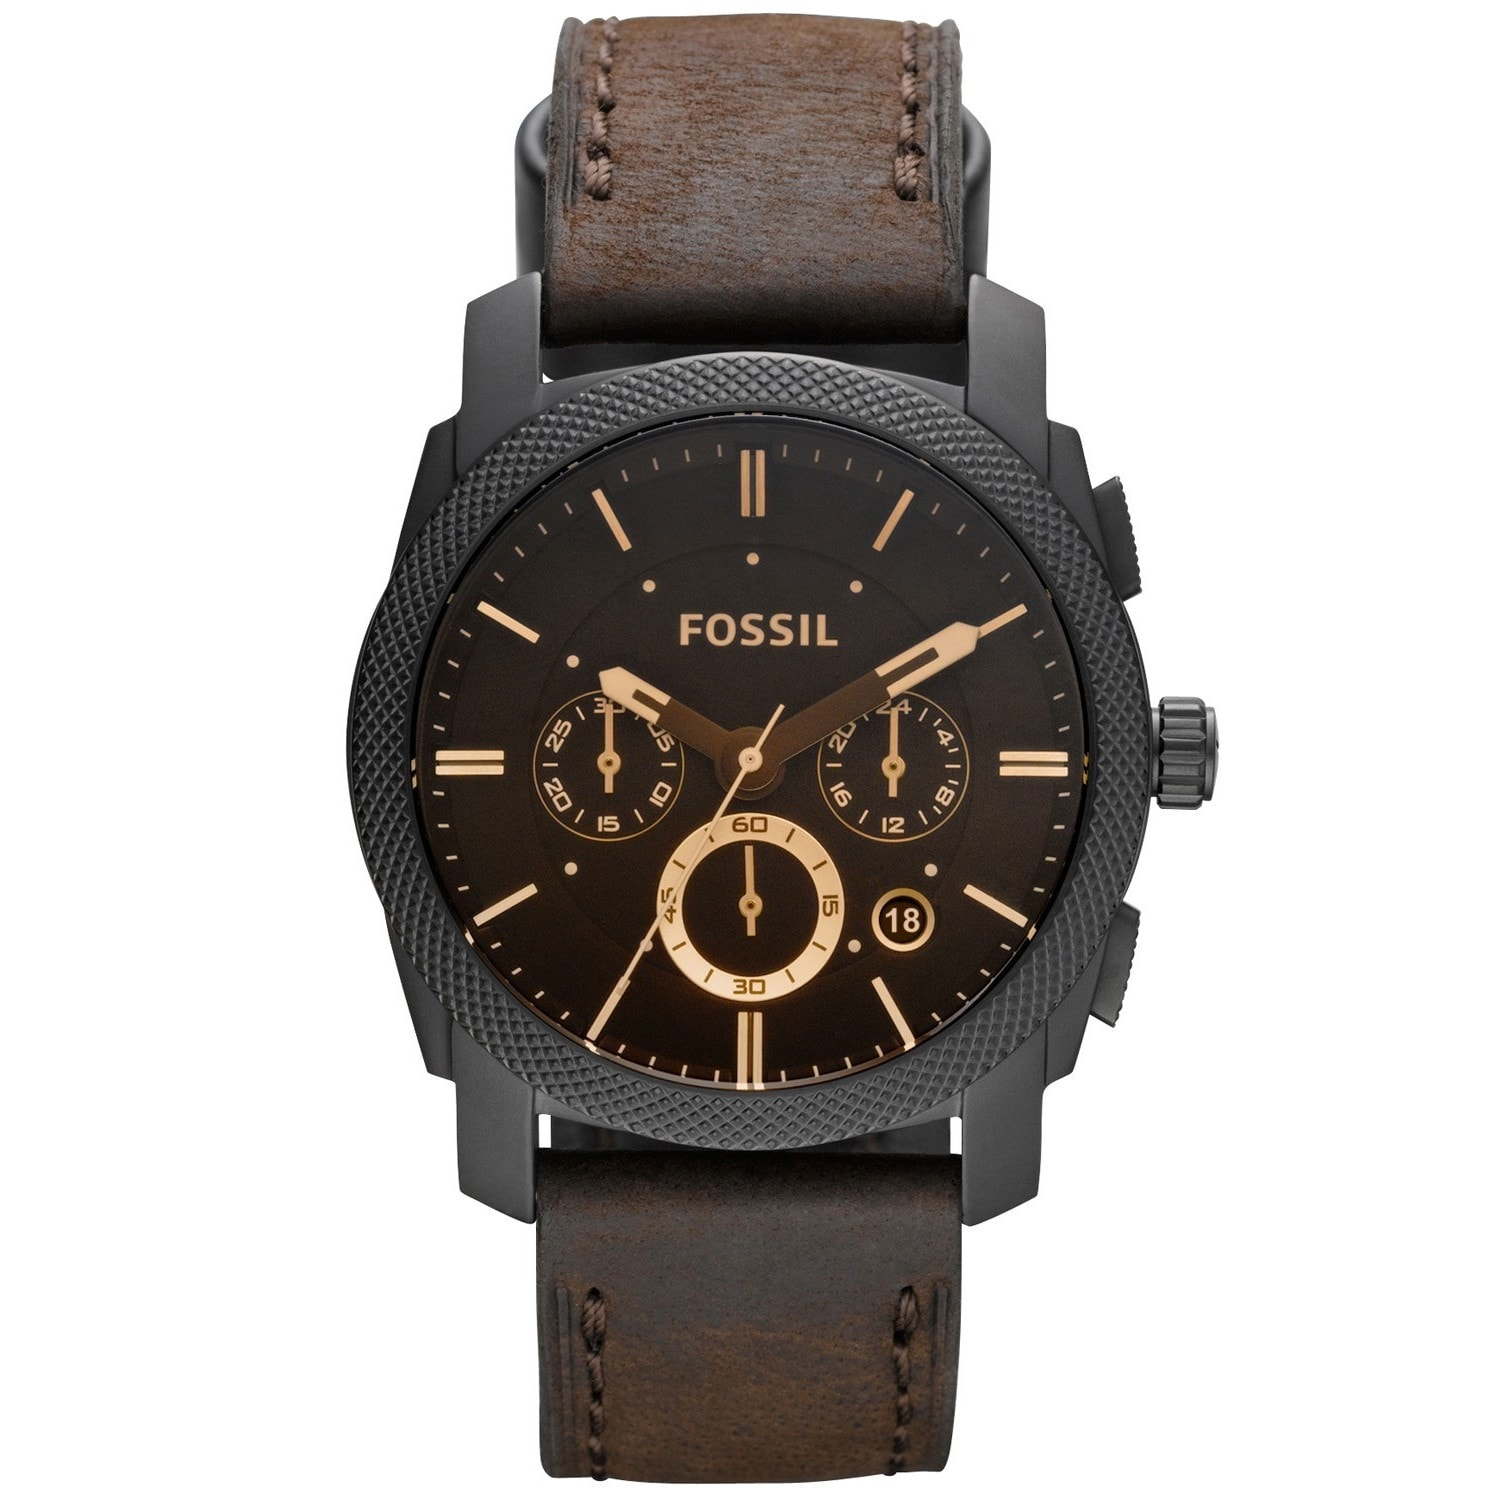 Fossil Men's FS4656 Machine Brown Leather Chronograph Wat...